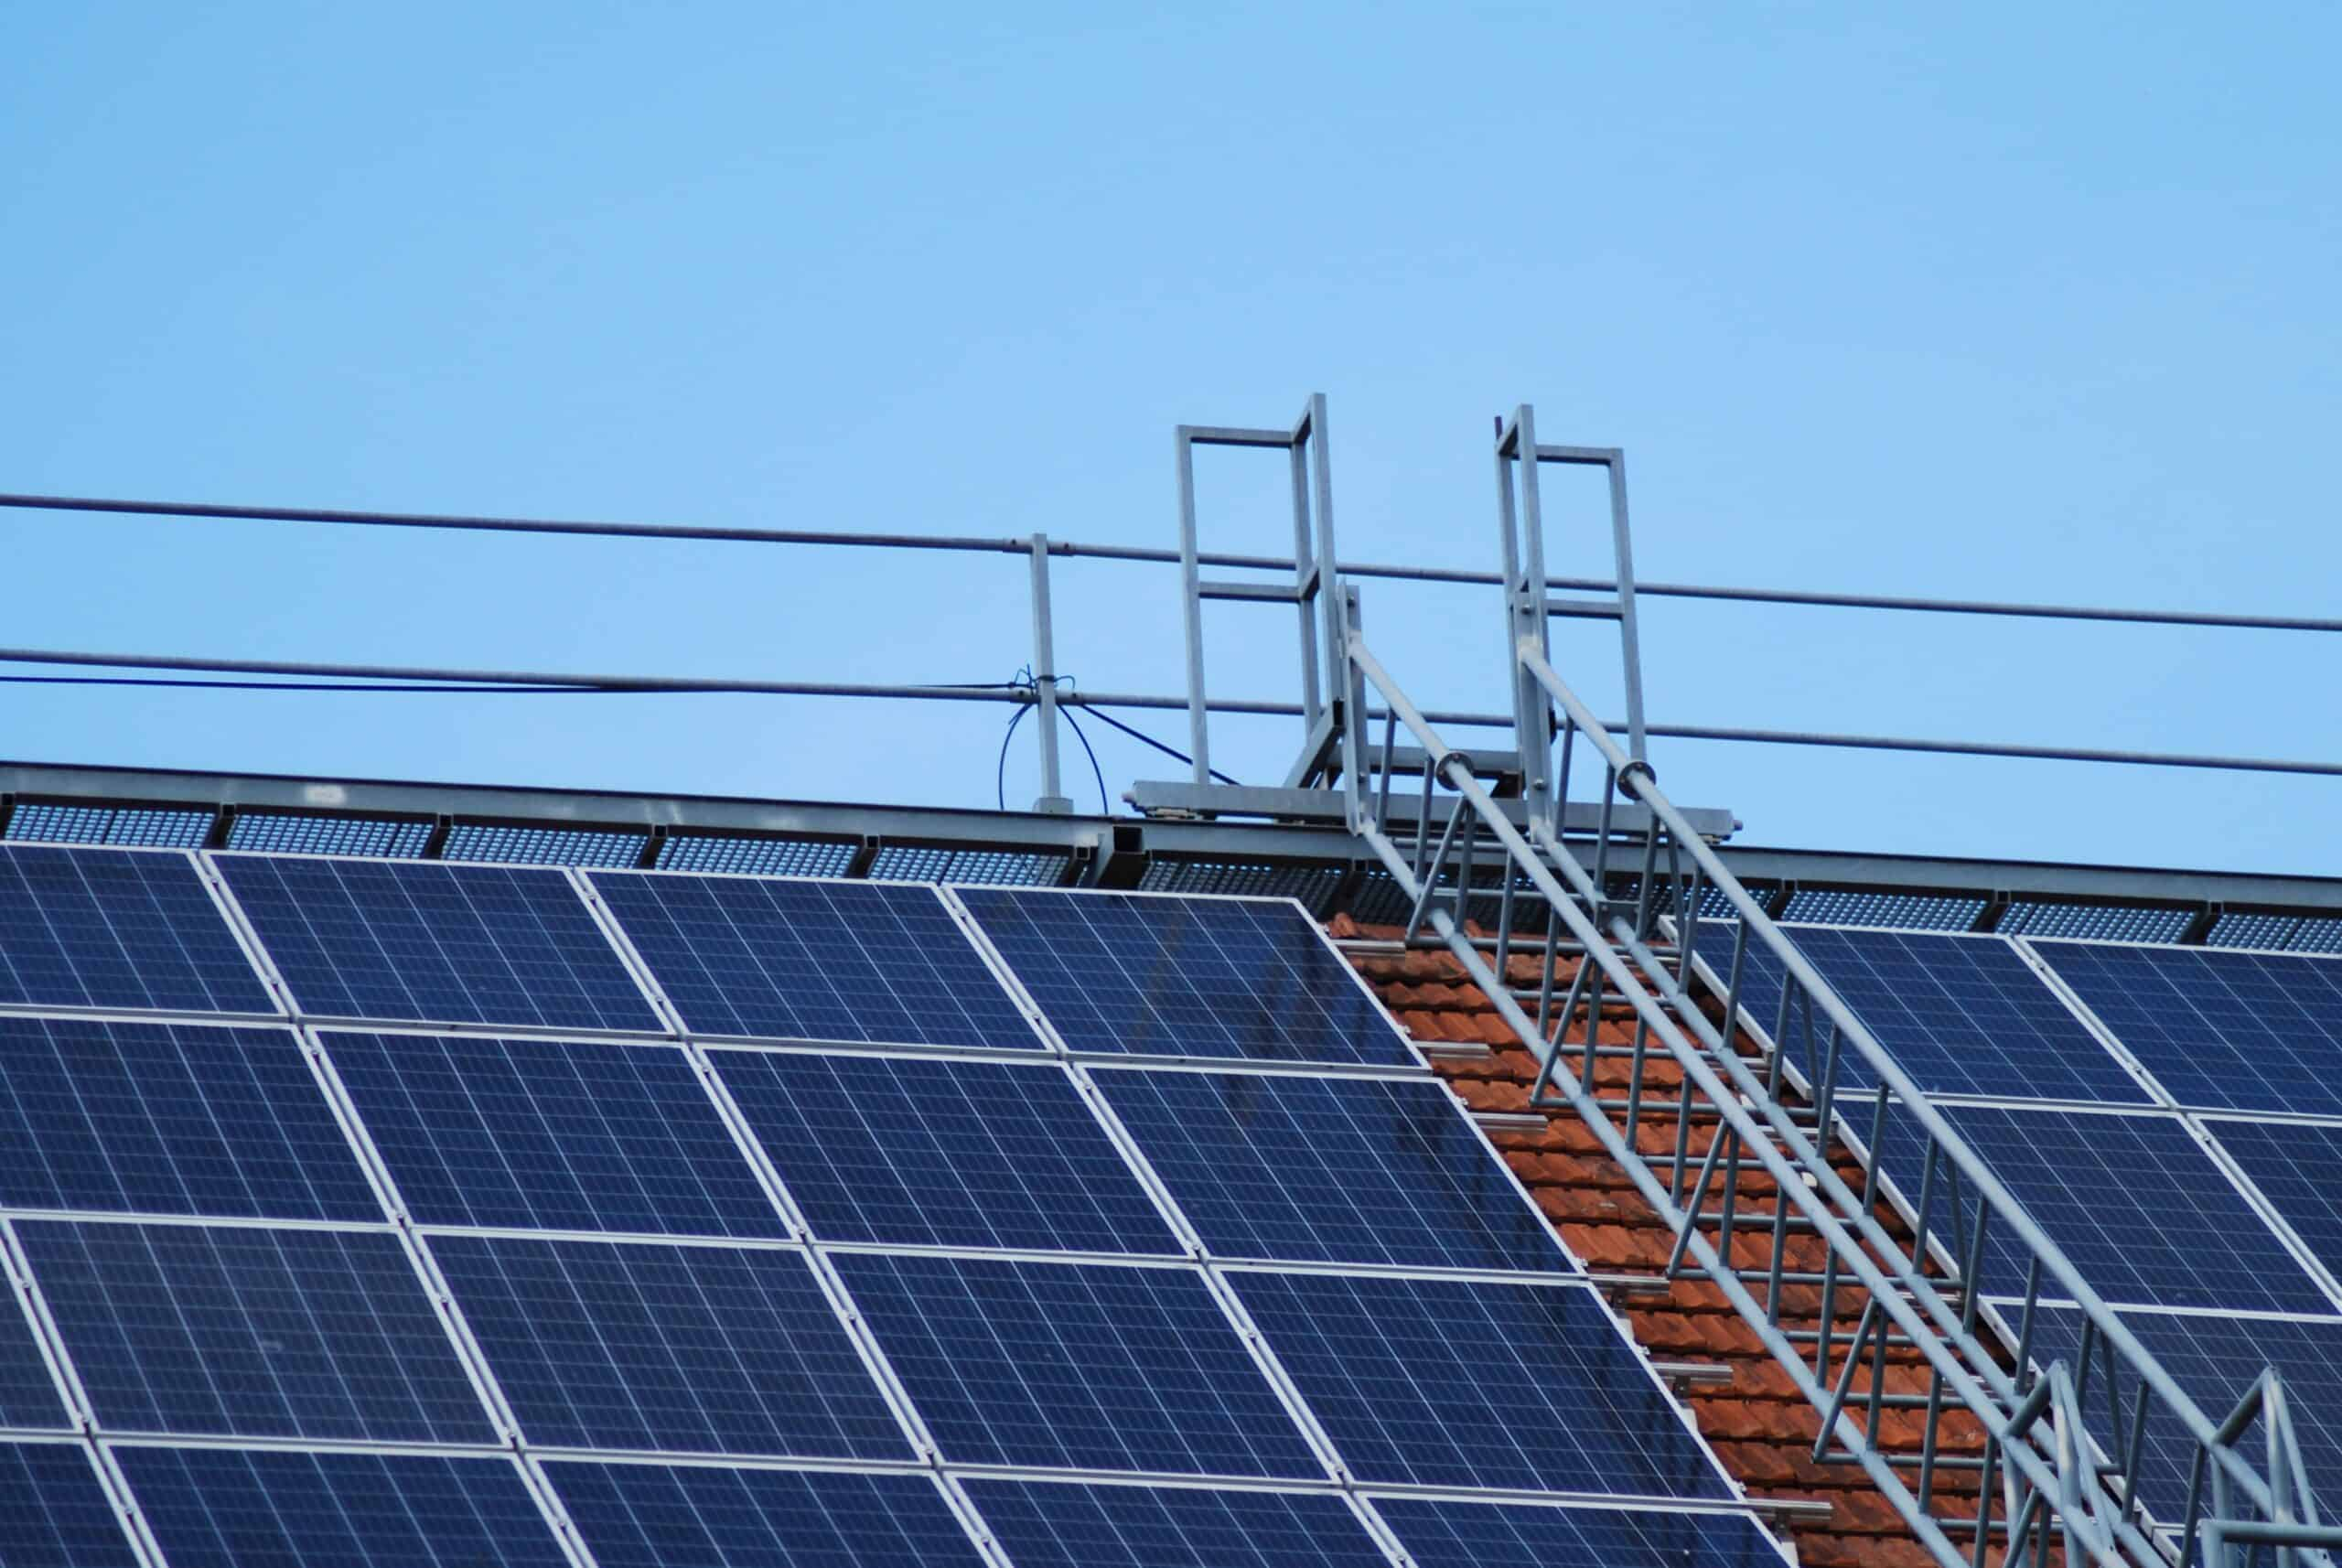 Rooftop solar pv system